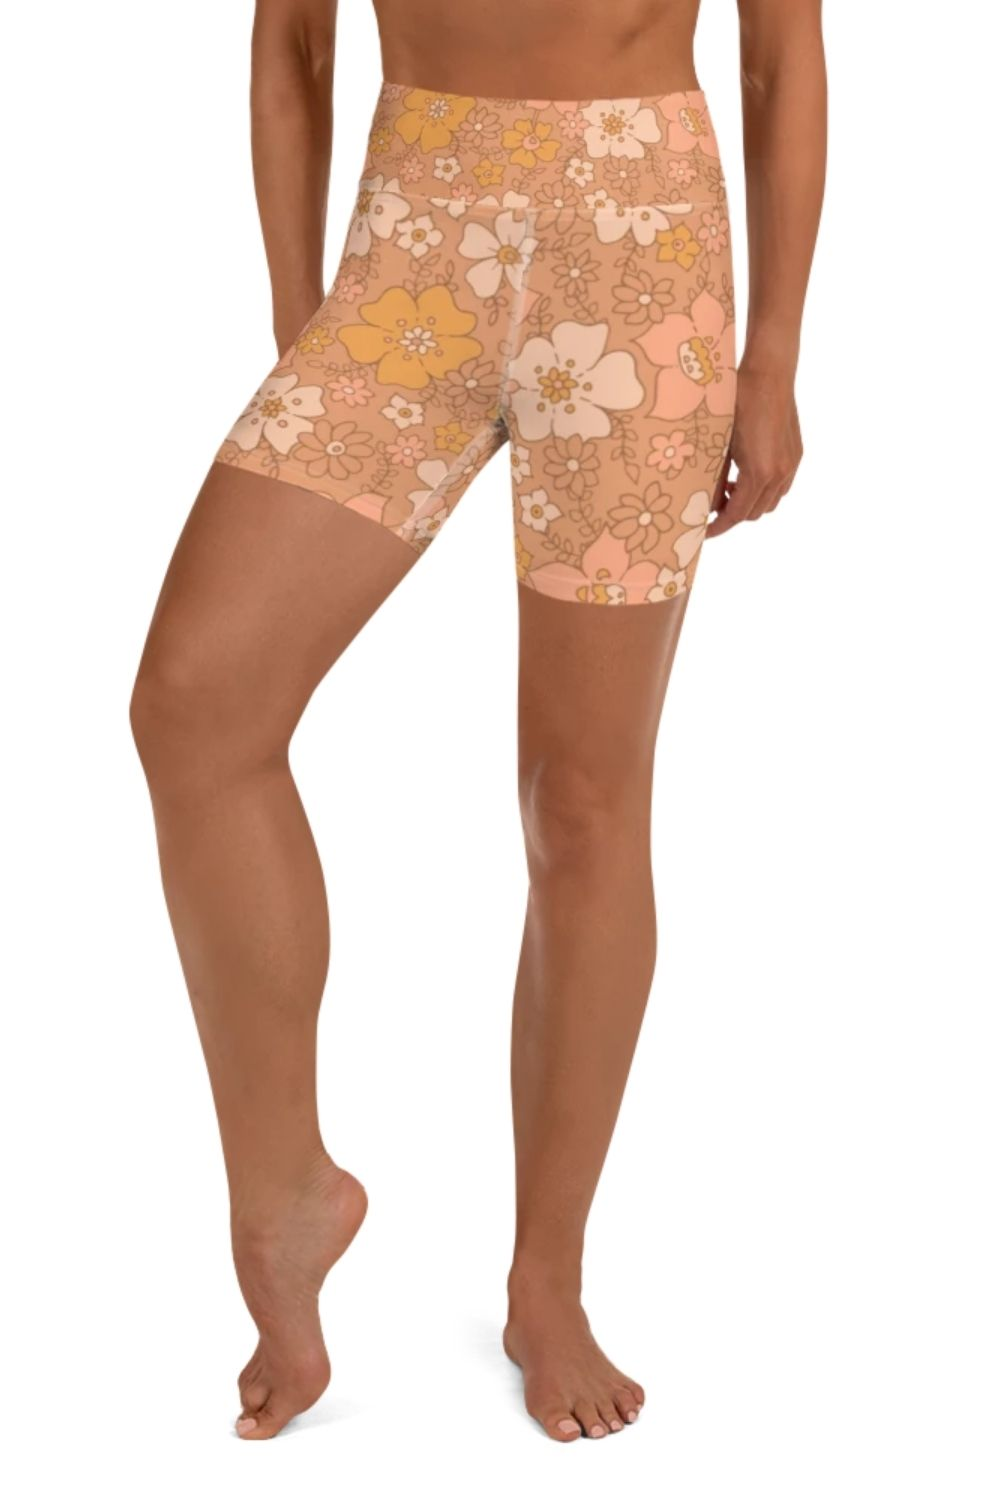 Peachy Keen Bike Shorts